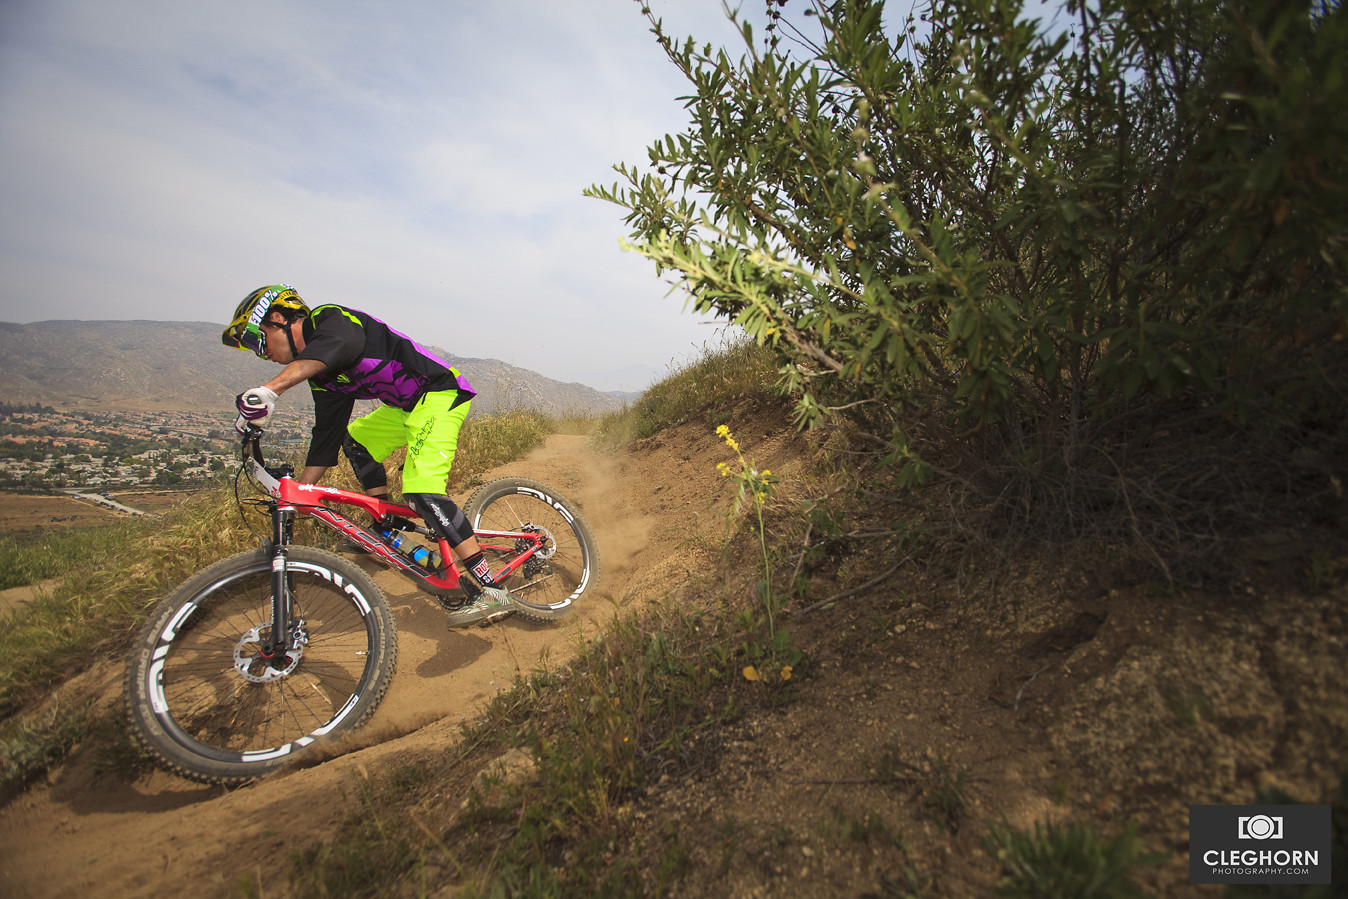 Stage 3 - Cleghorn Photography - Mountain Biking Pictures - Vital MTB